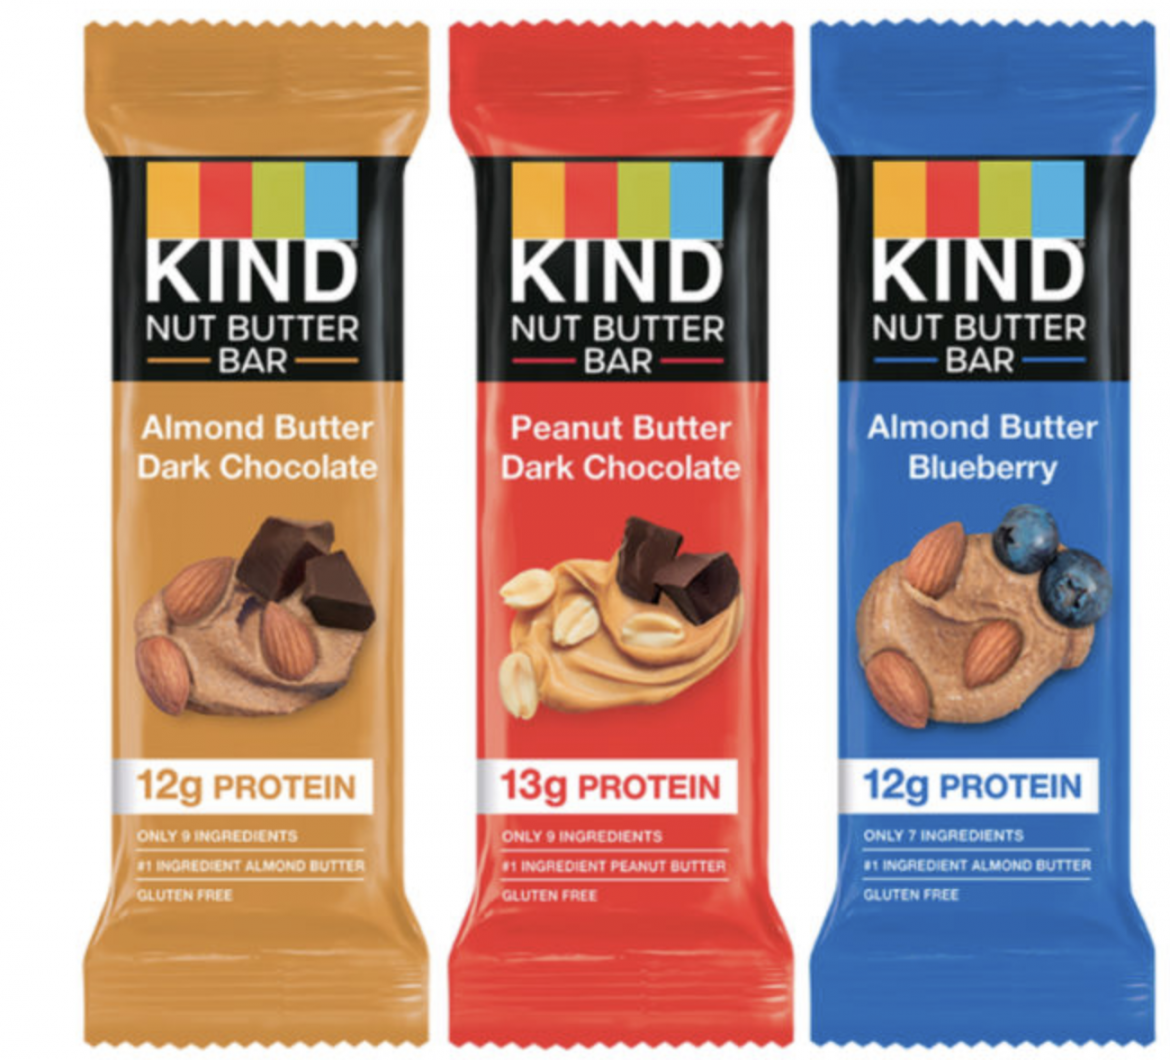 MONEYMAKER on Kind Nut Butter Bars at Target!